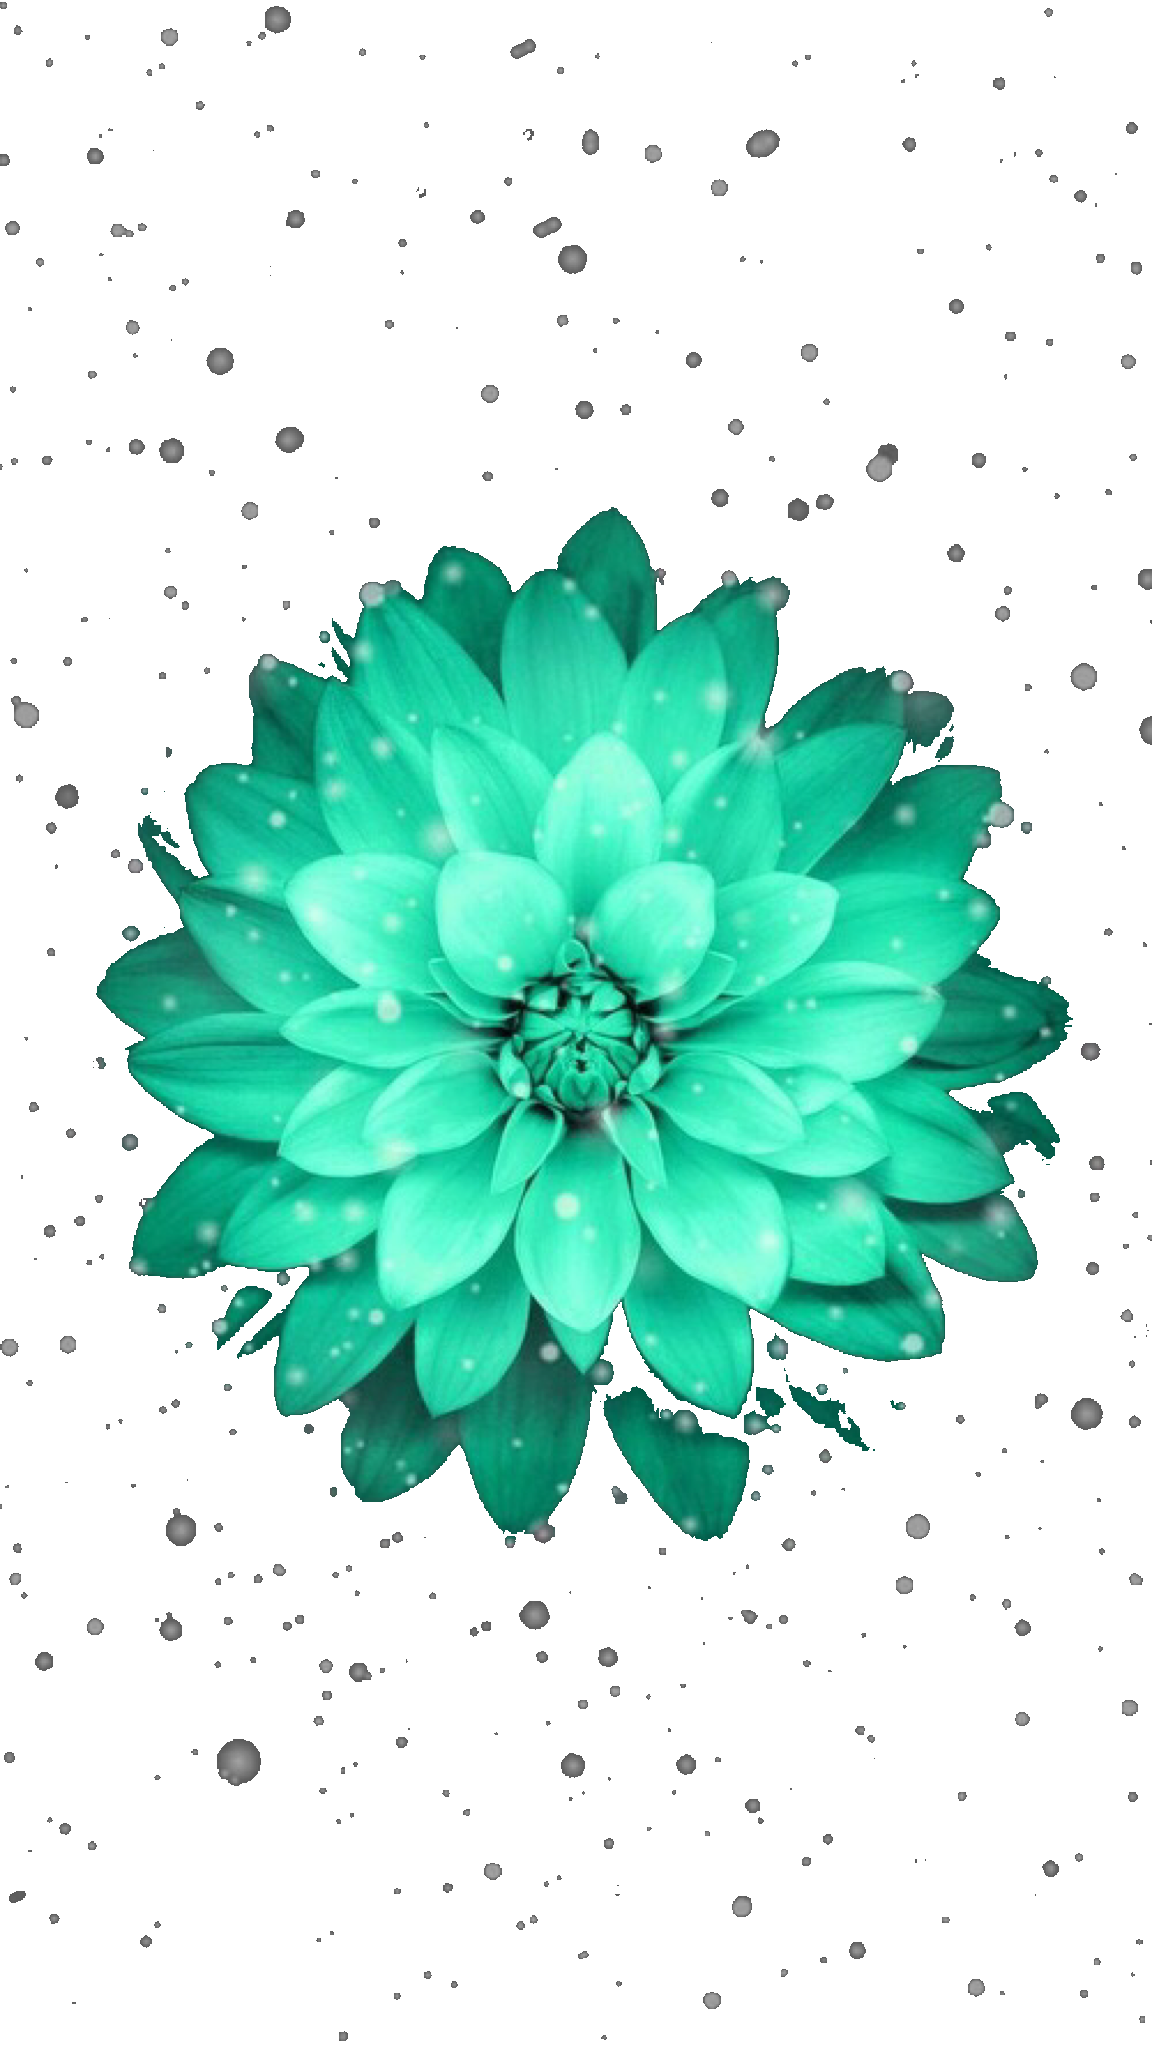 Abstract Teal Flowers Wallpaper